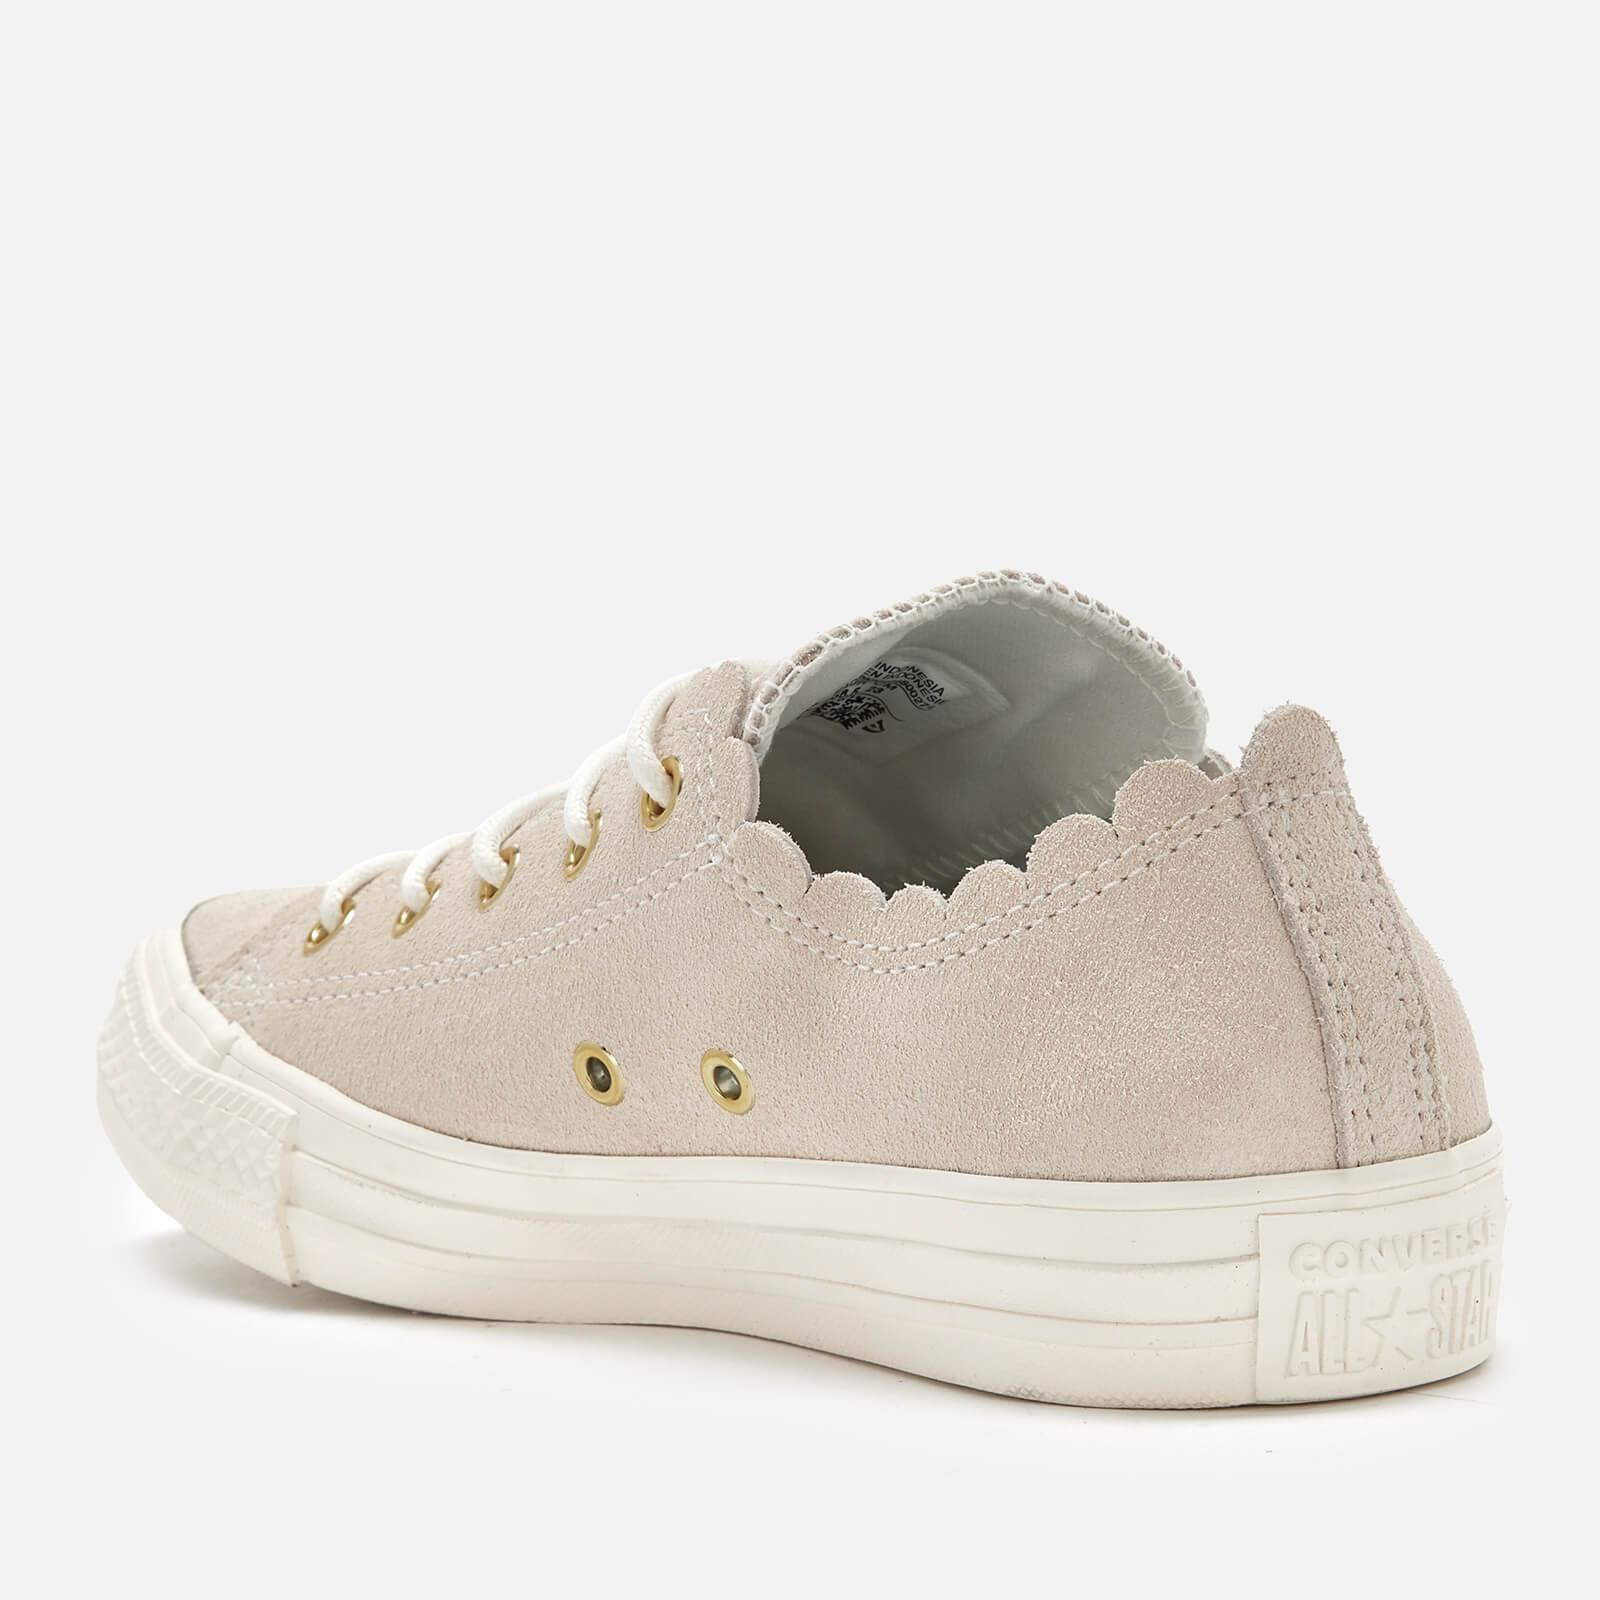 9fa79597985d Converse - Multicolor Chuck Taylor All Star Scalloped Edge Ox Trainers -  Lyst. View fullscreen